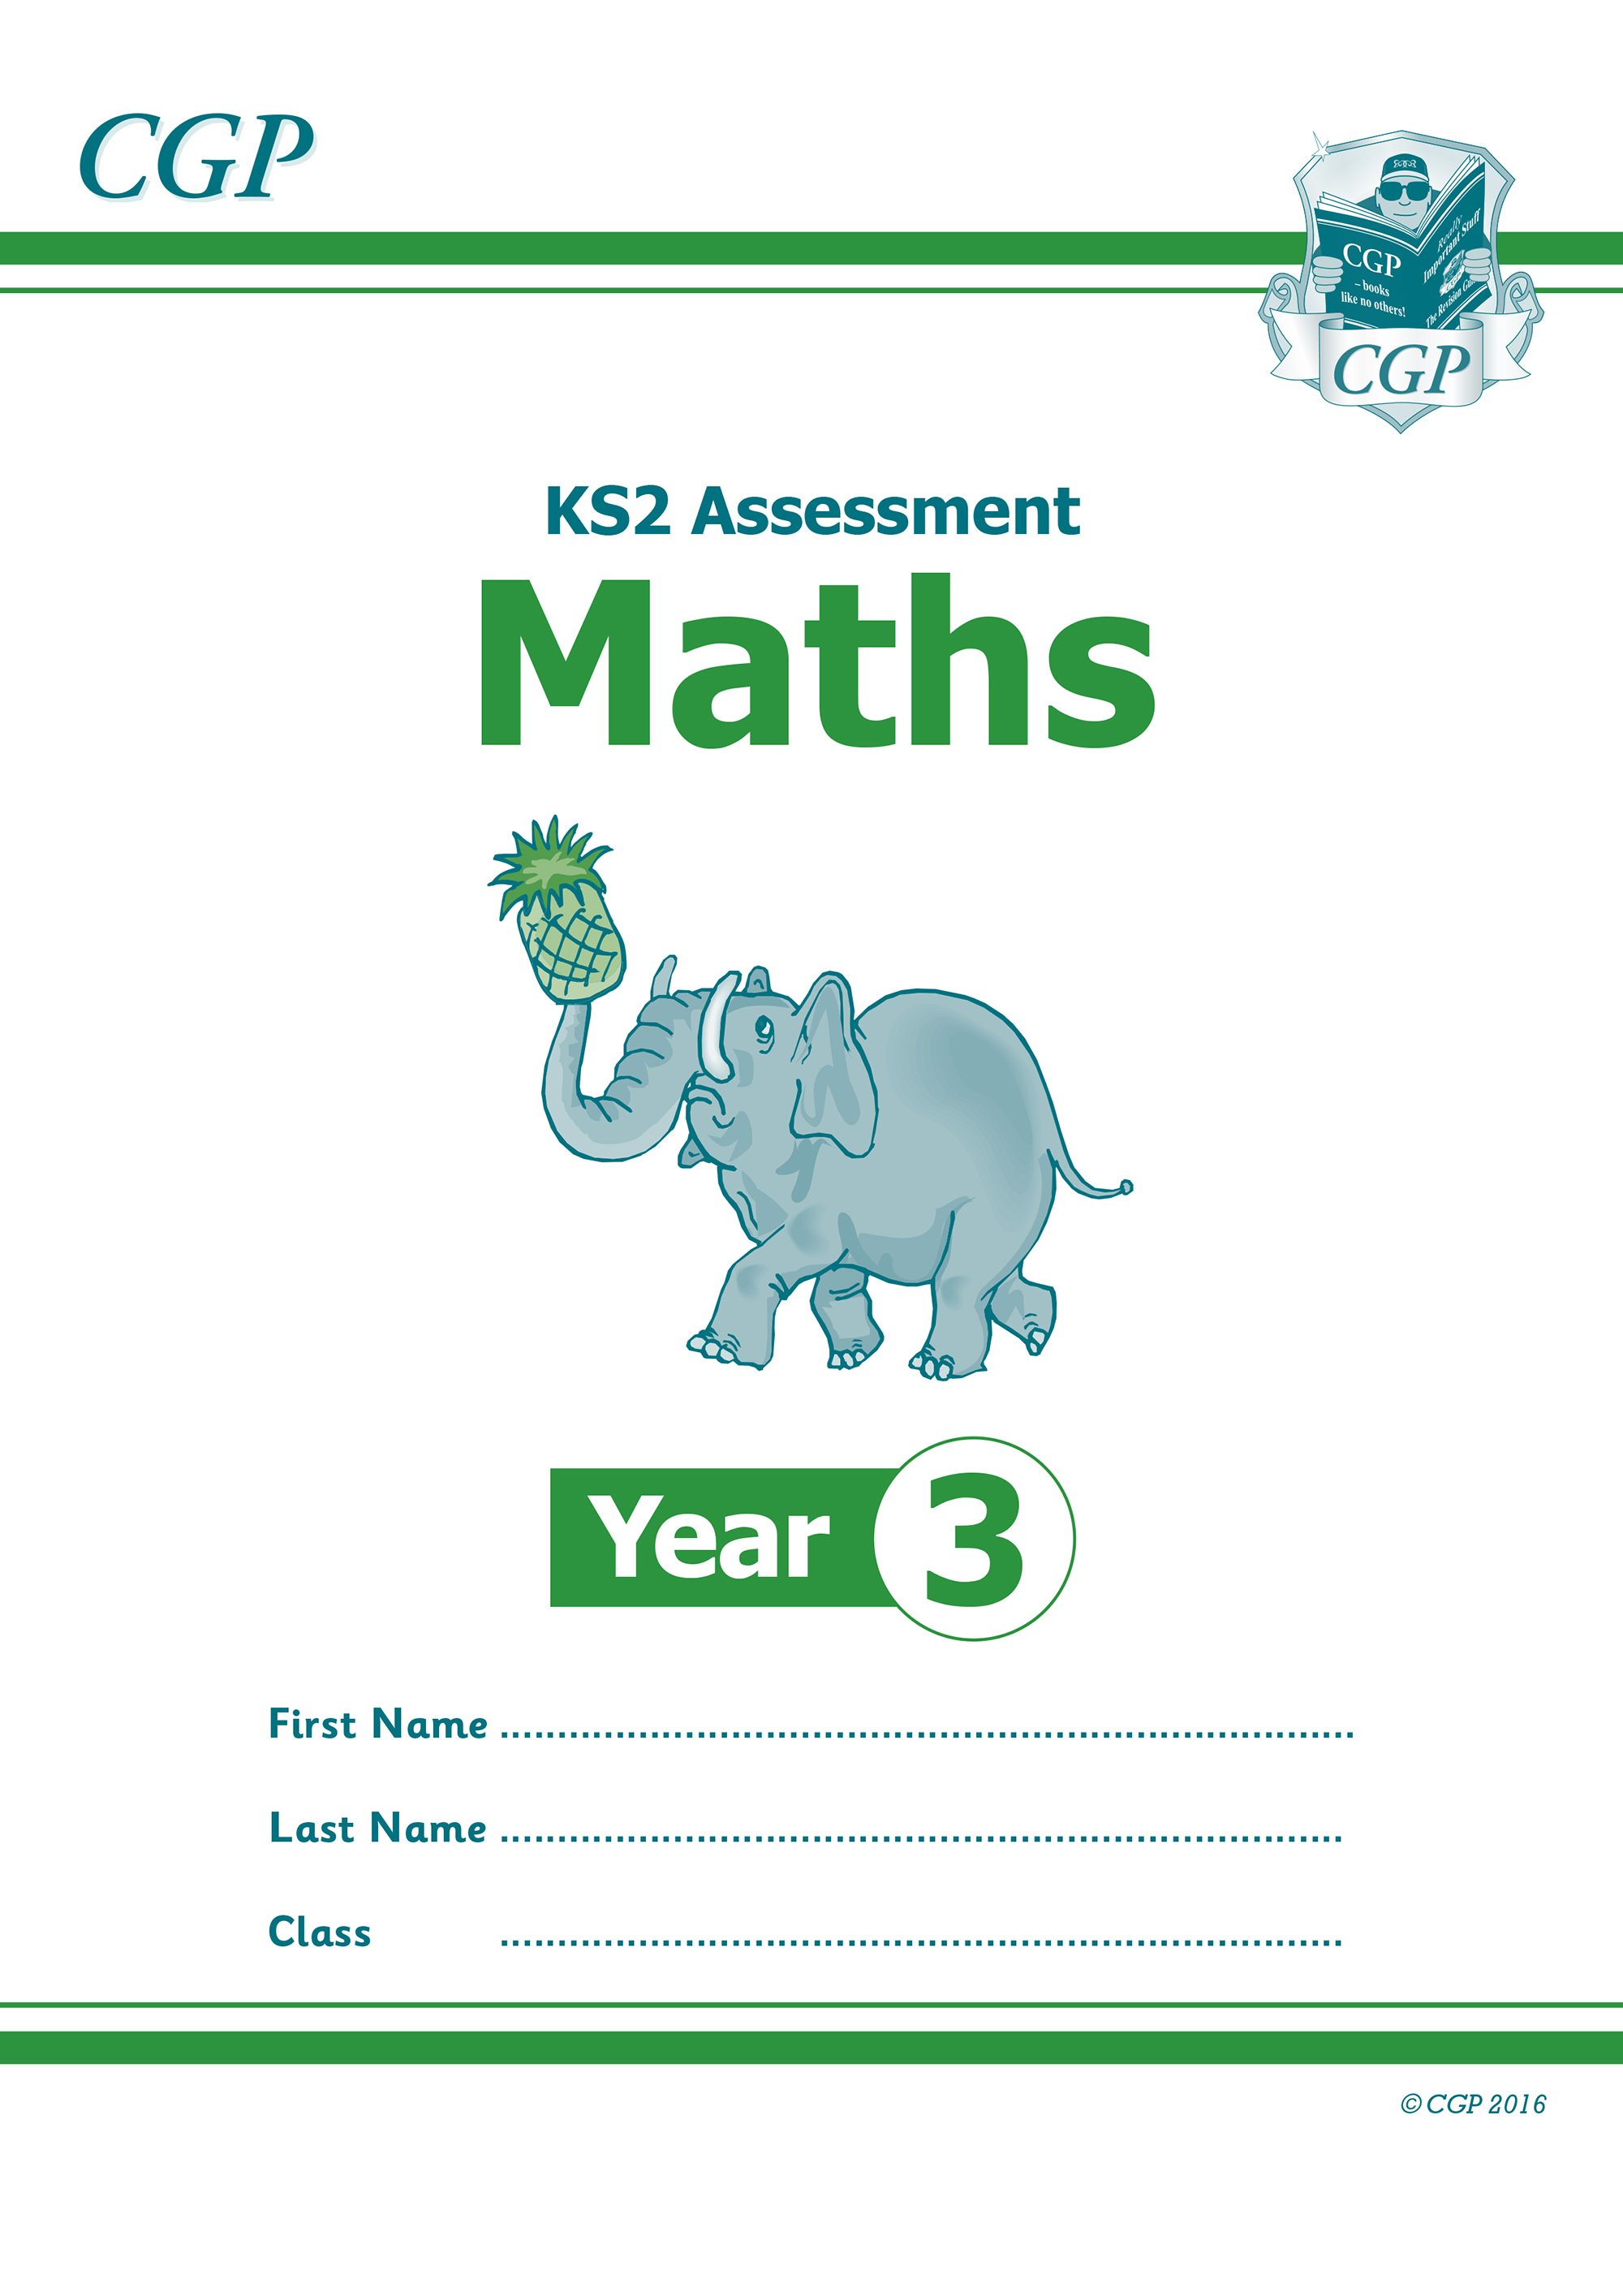 M3P21 - New KS2 Assessment: Maths - Year 3 Test